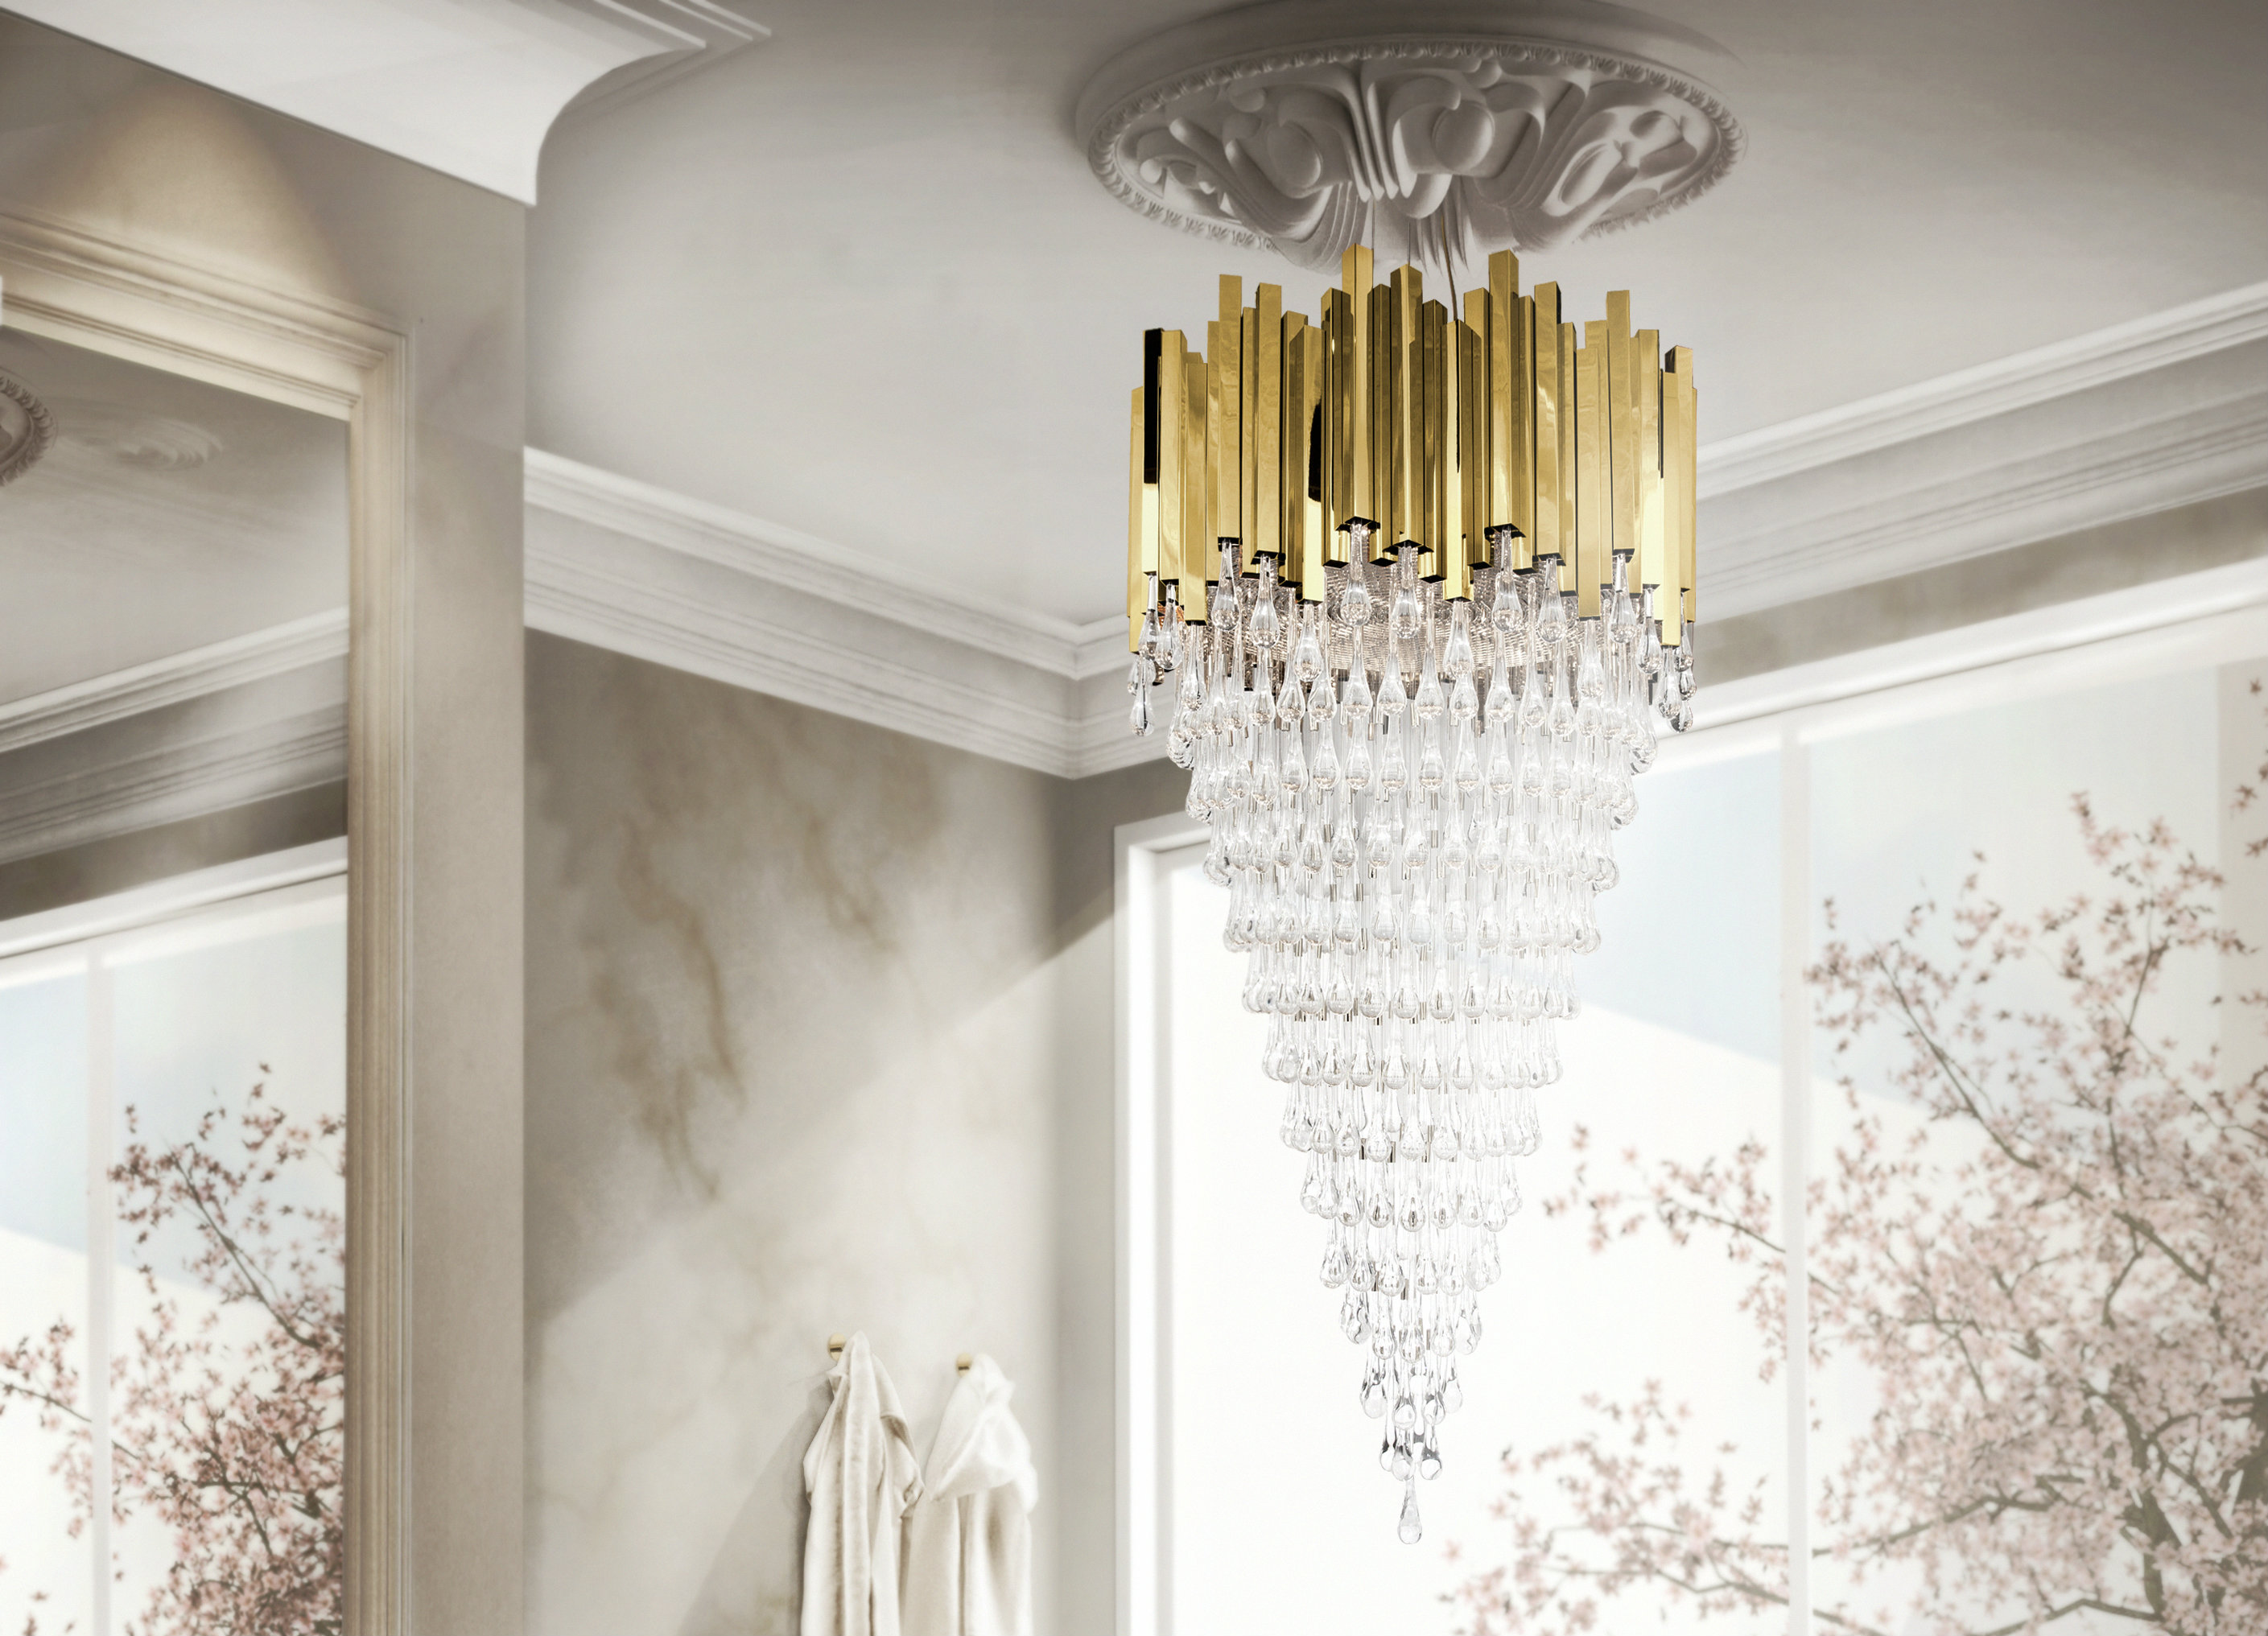 5 Gold chandeliers with crystals to light up your world interior designers The real lighting bible for interior designers trump chandeleir 2 interior designers The real lighting bible for interior designers trump chandeleir 2